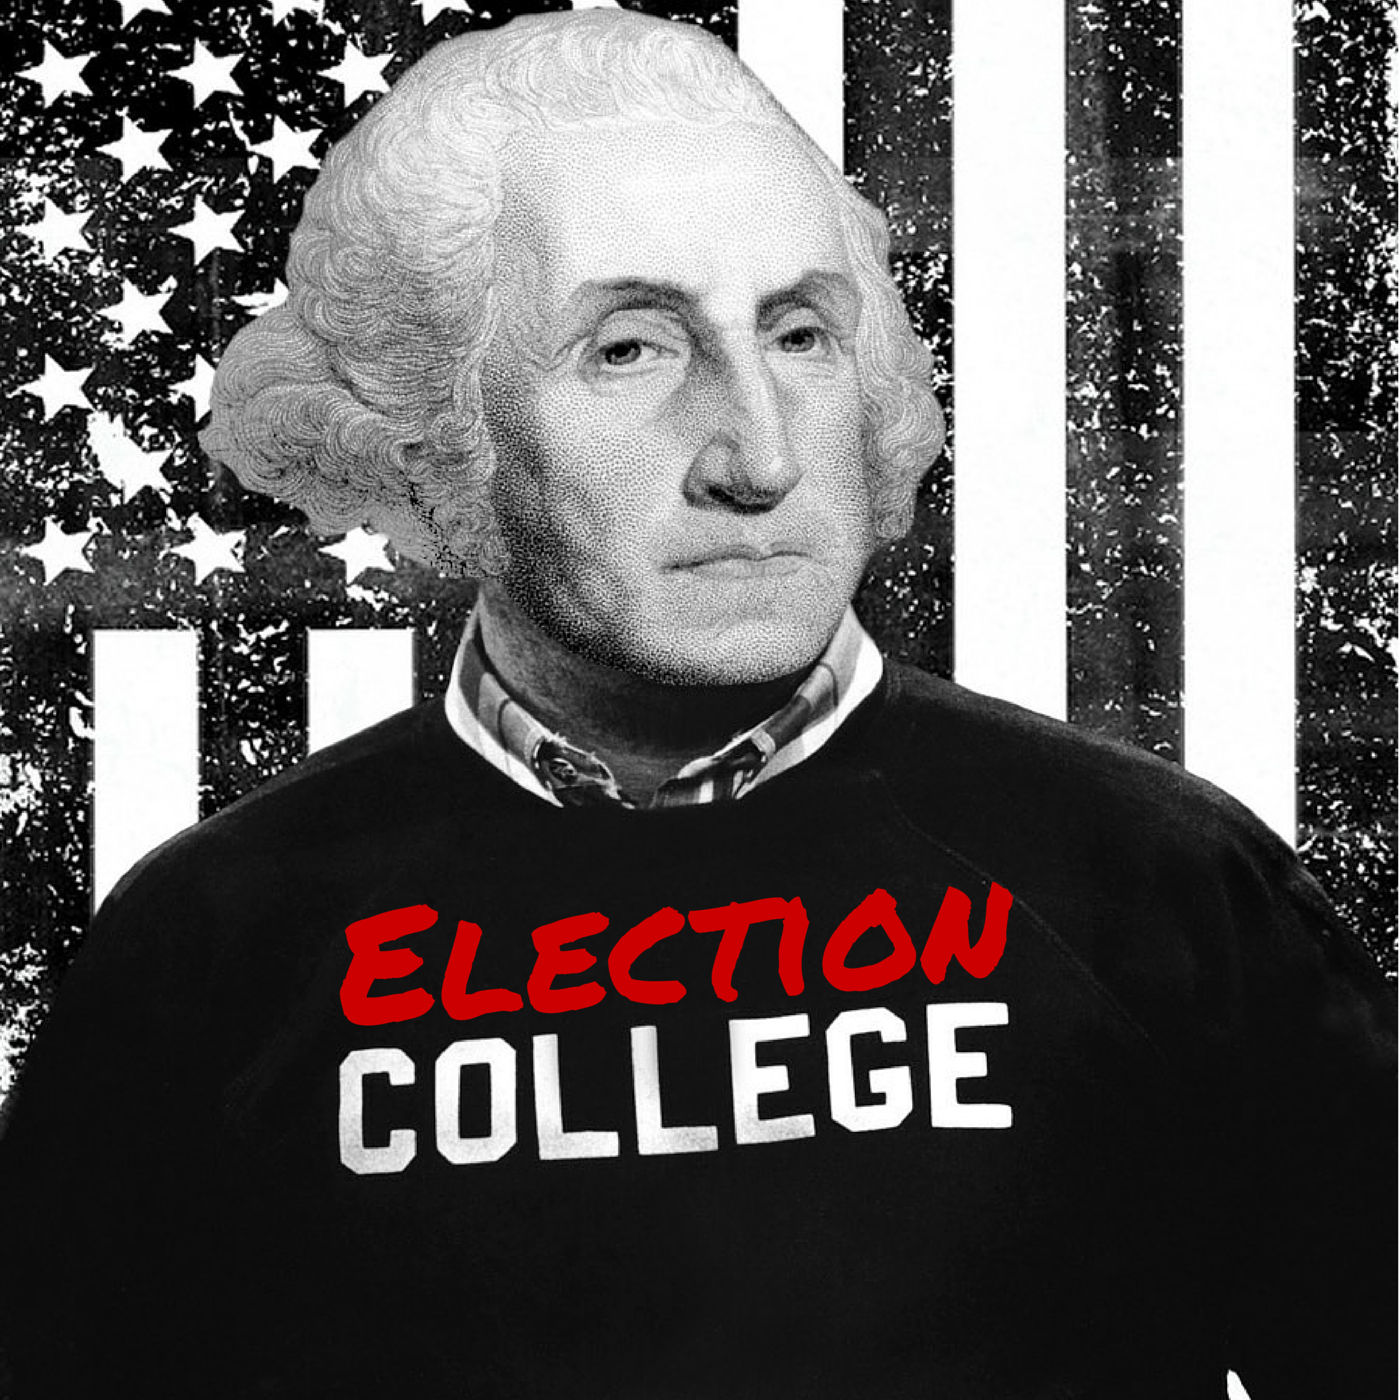 John Quincy Adams the President and Elder Statesman (His Life - Part 2)| Episode #131 | Election College: United States Presidential Election History